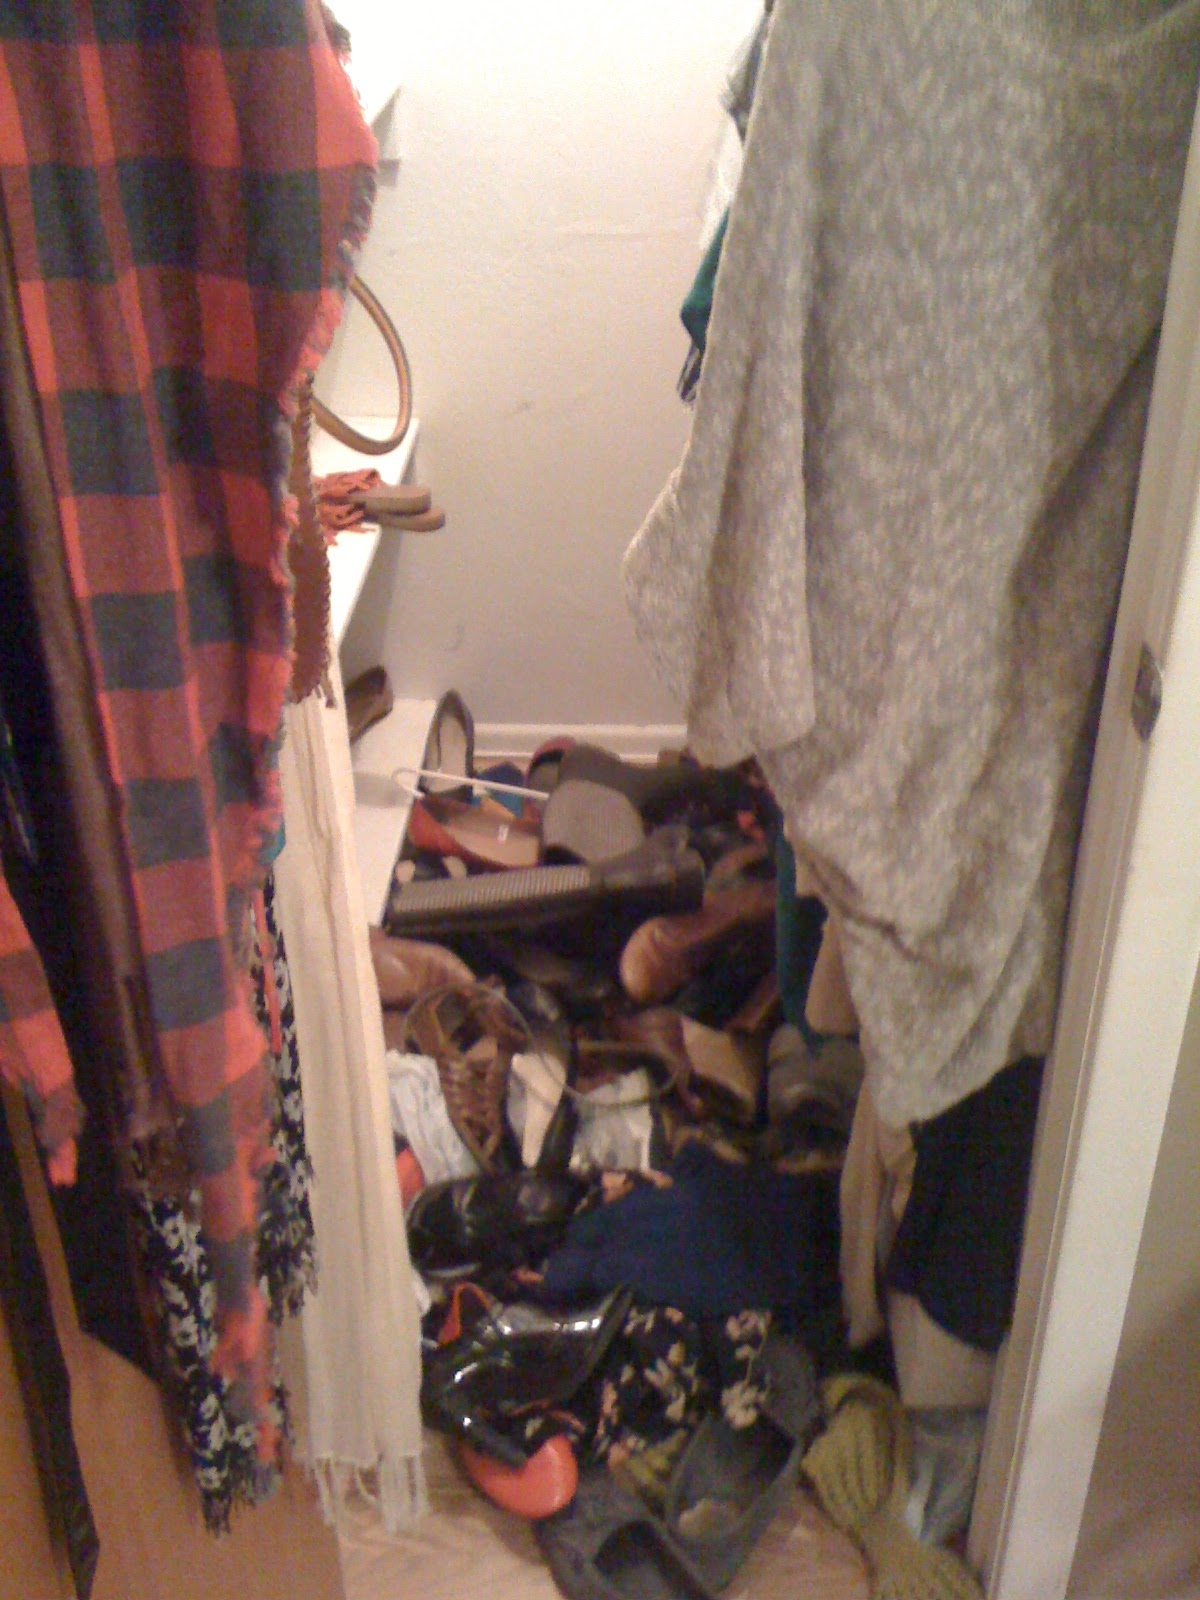 This Is What My Closet Has Looked Like At Itu0027s Very Worst. I Snapped This  Photo One Day When I Realized That I In Fact Had A Problem.